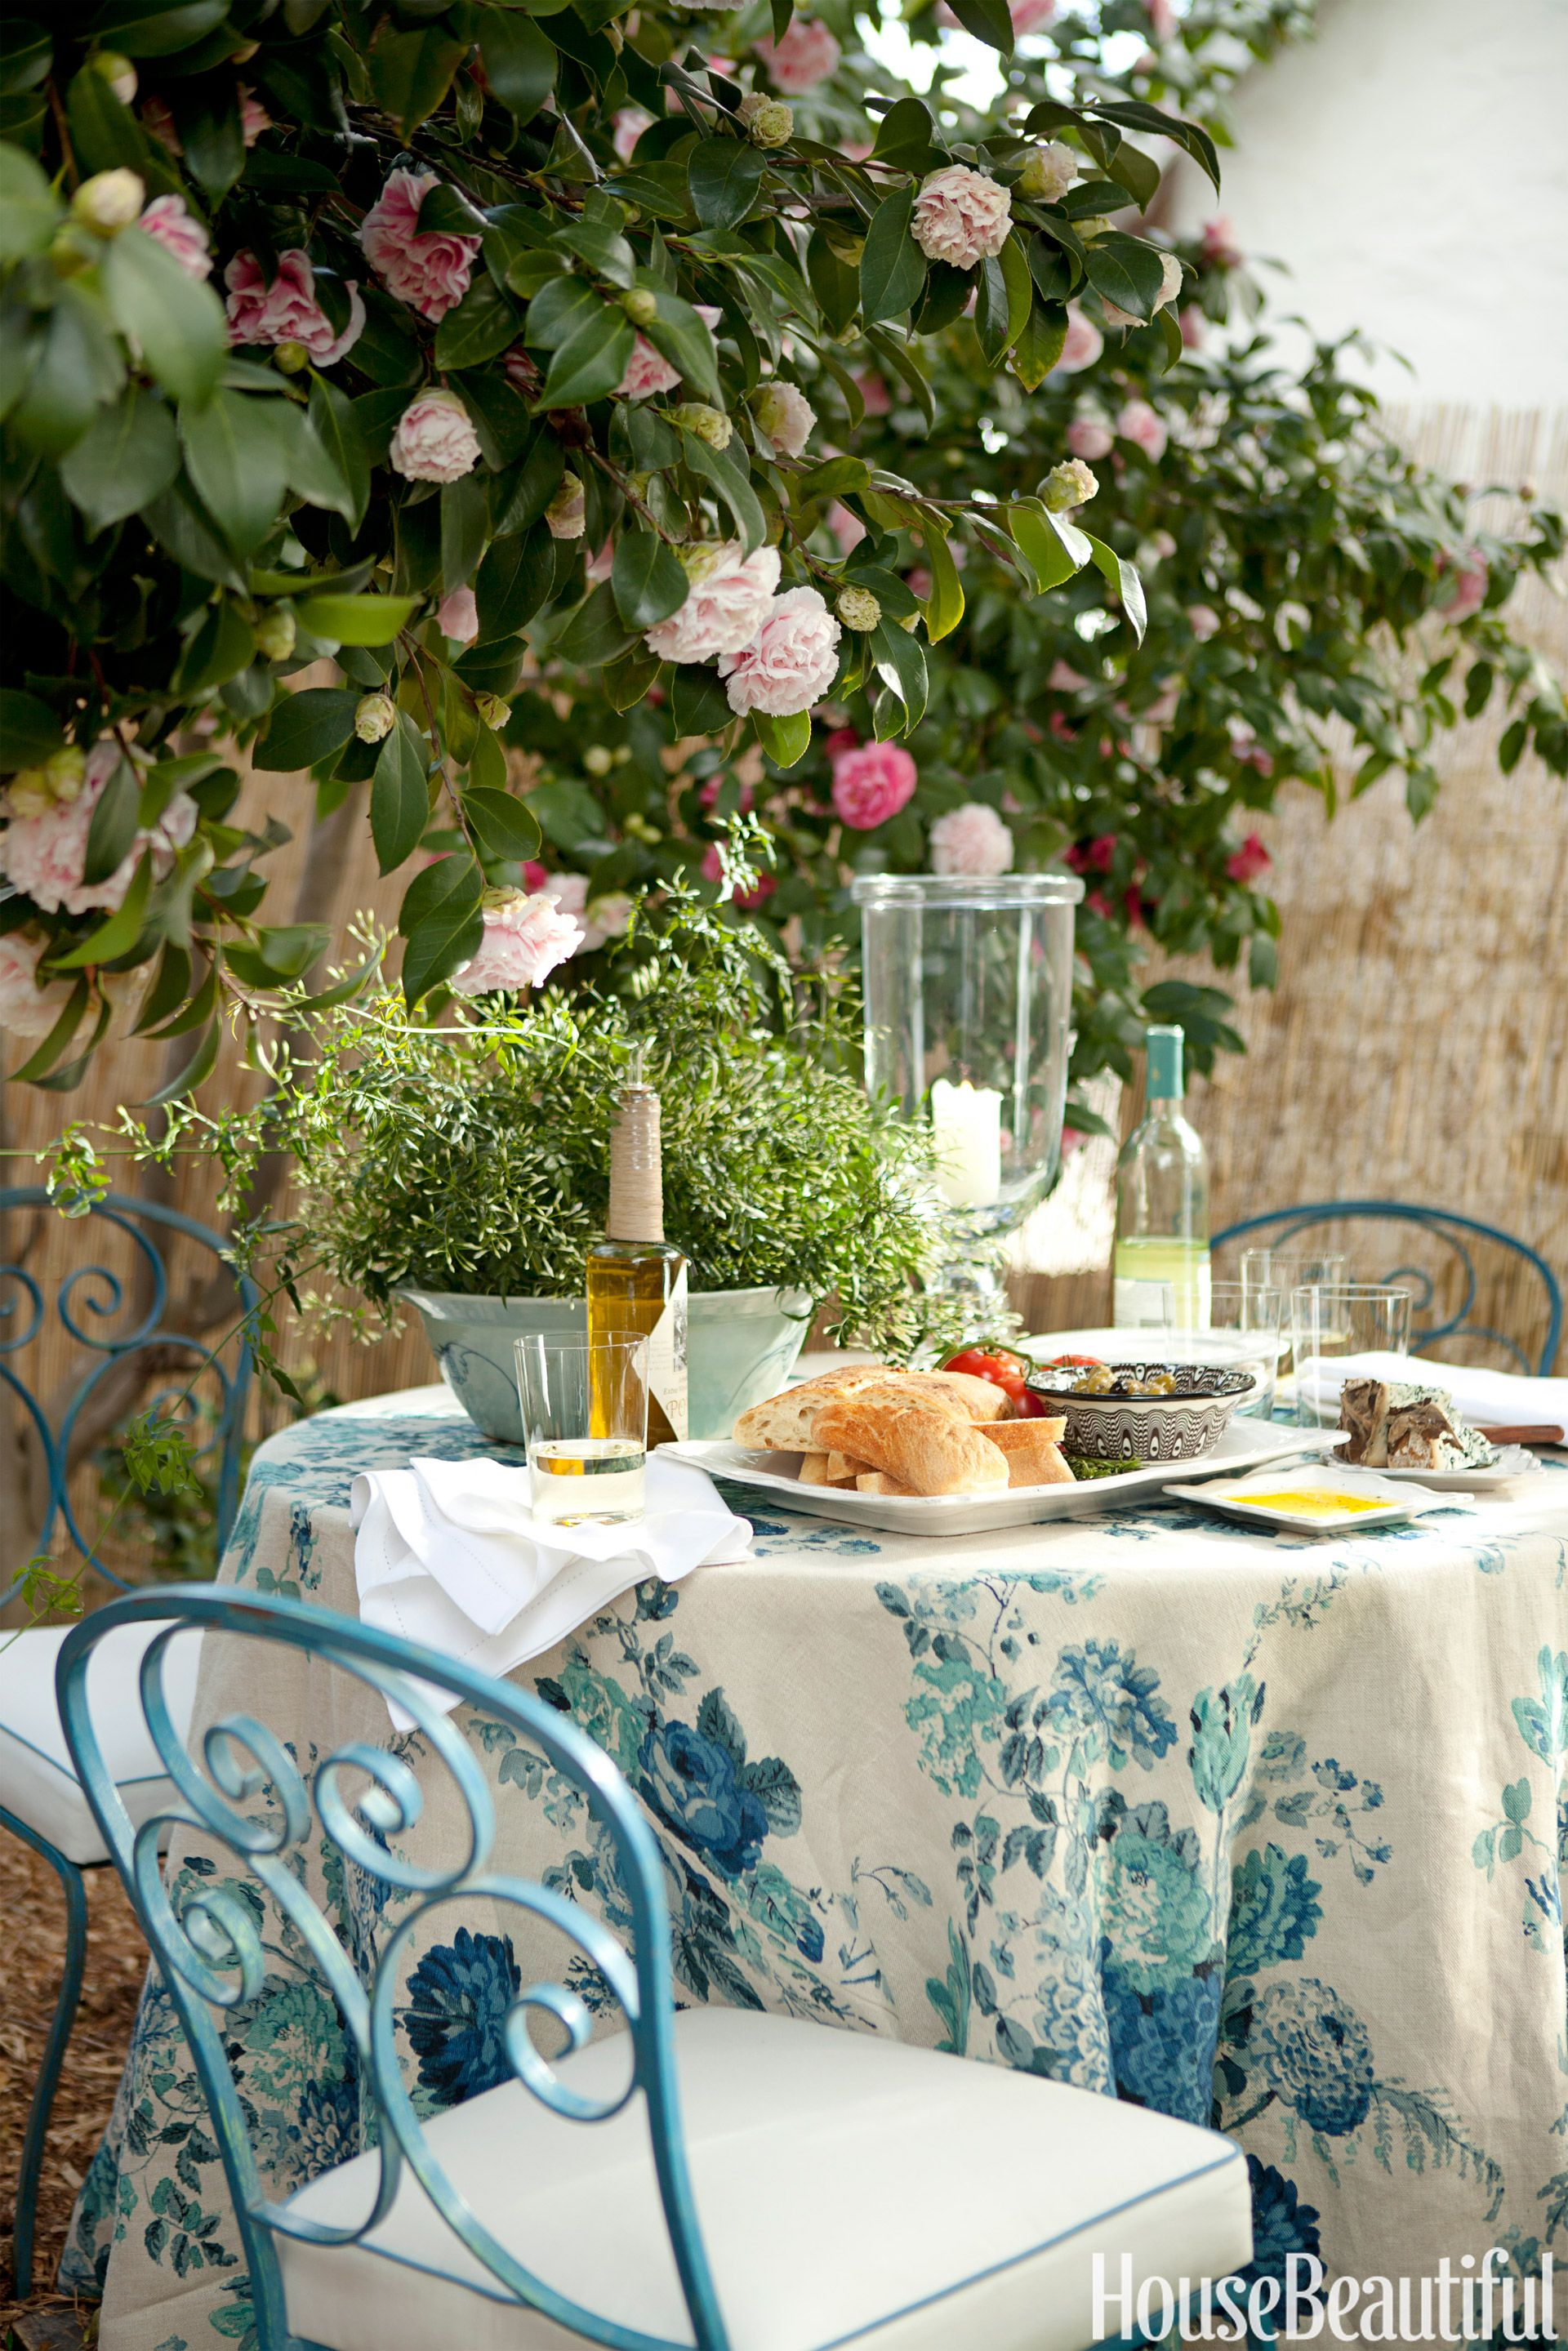 Camellias arch over an outdoor dining table draped with a clarence house linen dahlia crisp hemstitch linen napkins candlelight